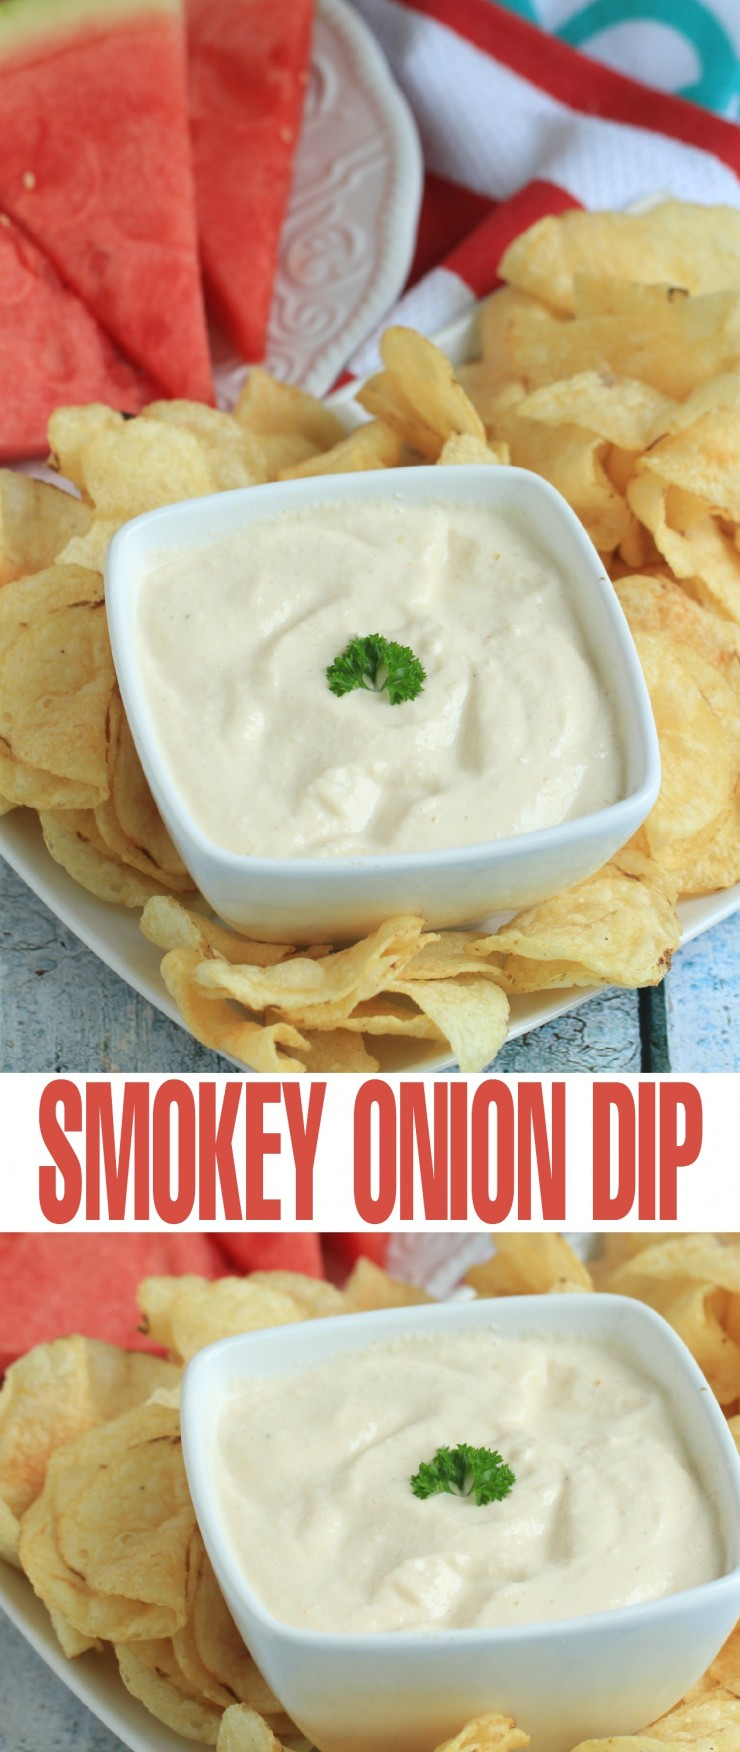 Pair this Smokey Onion Dip with chips or veggies as a perfect appetizer for your next summer barbecue!